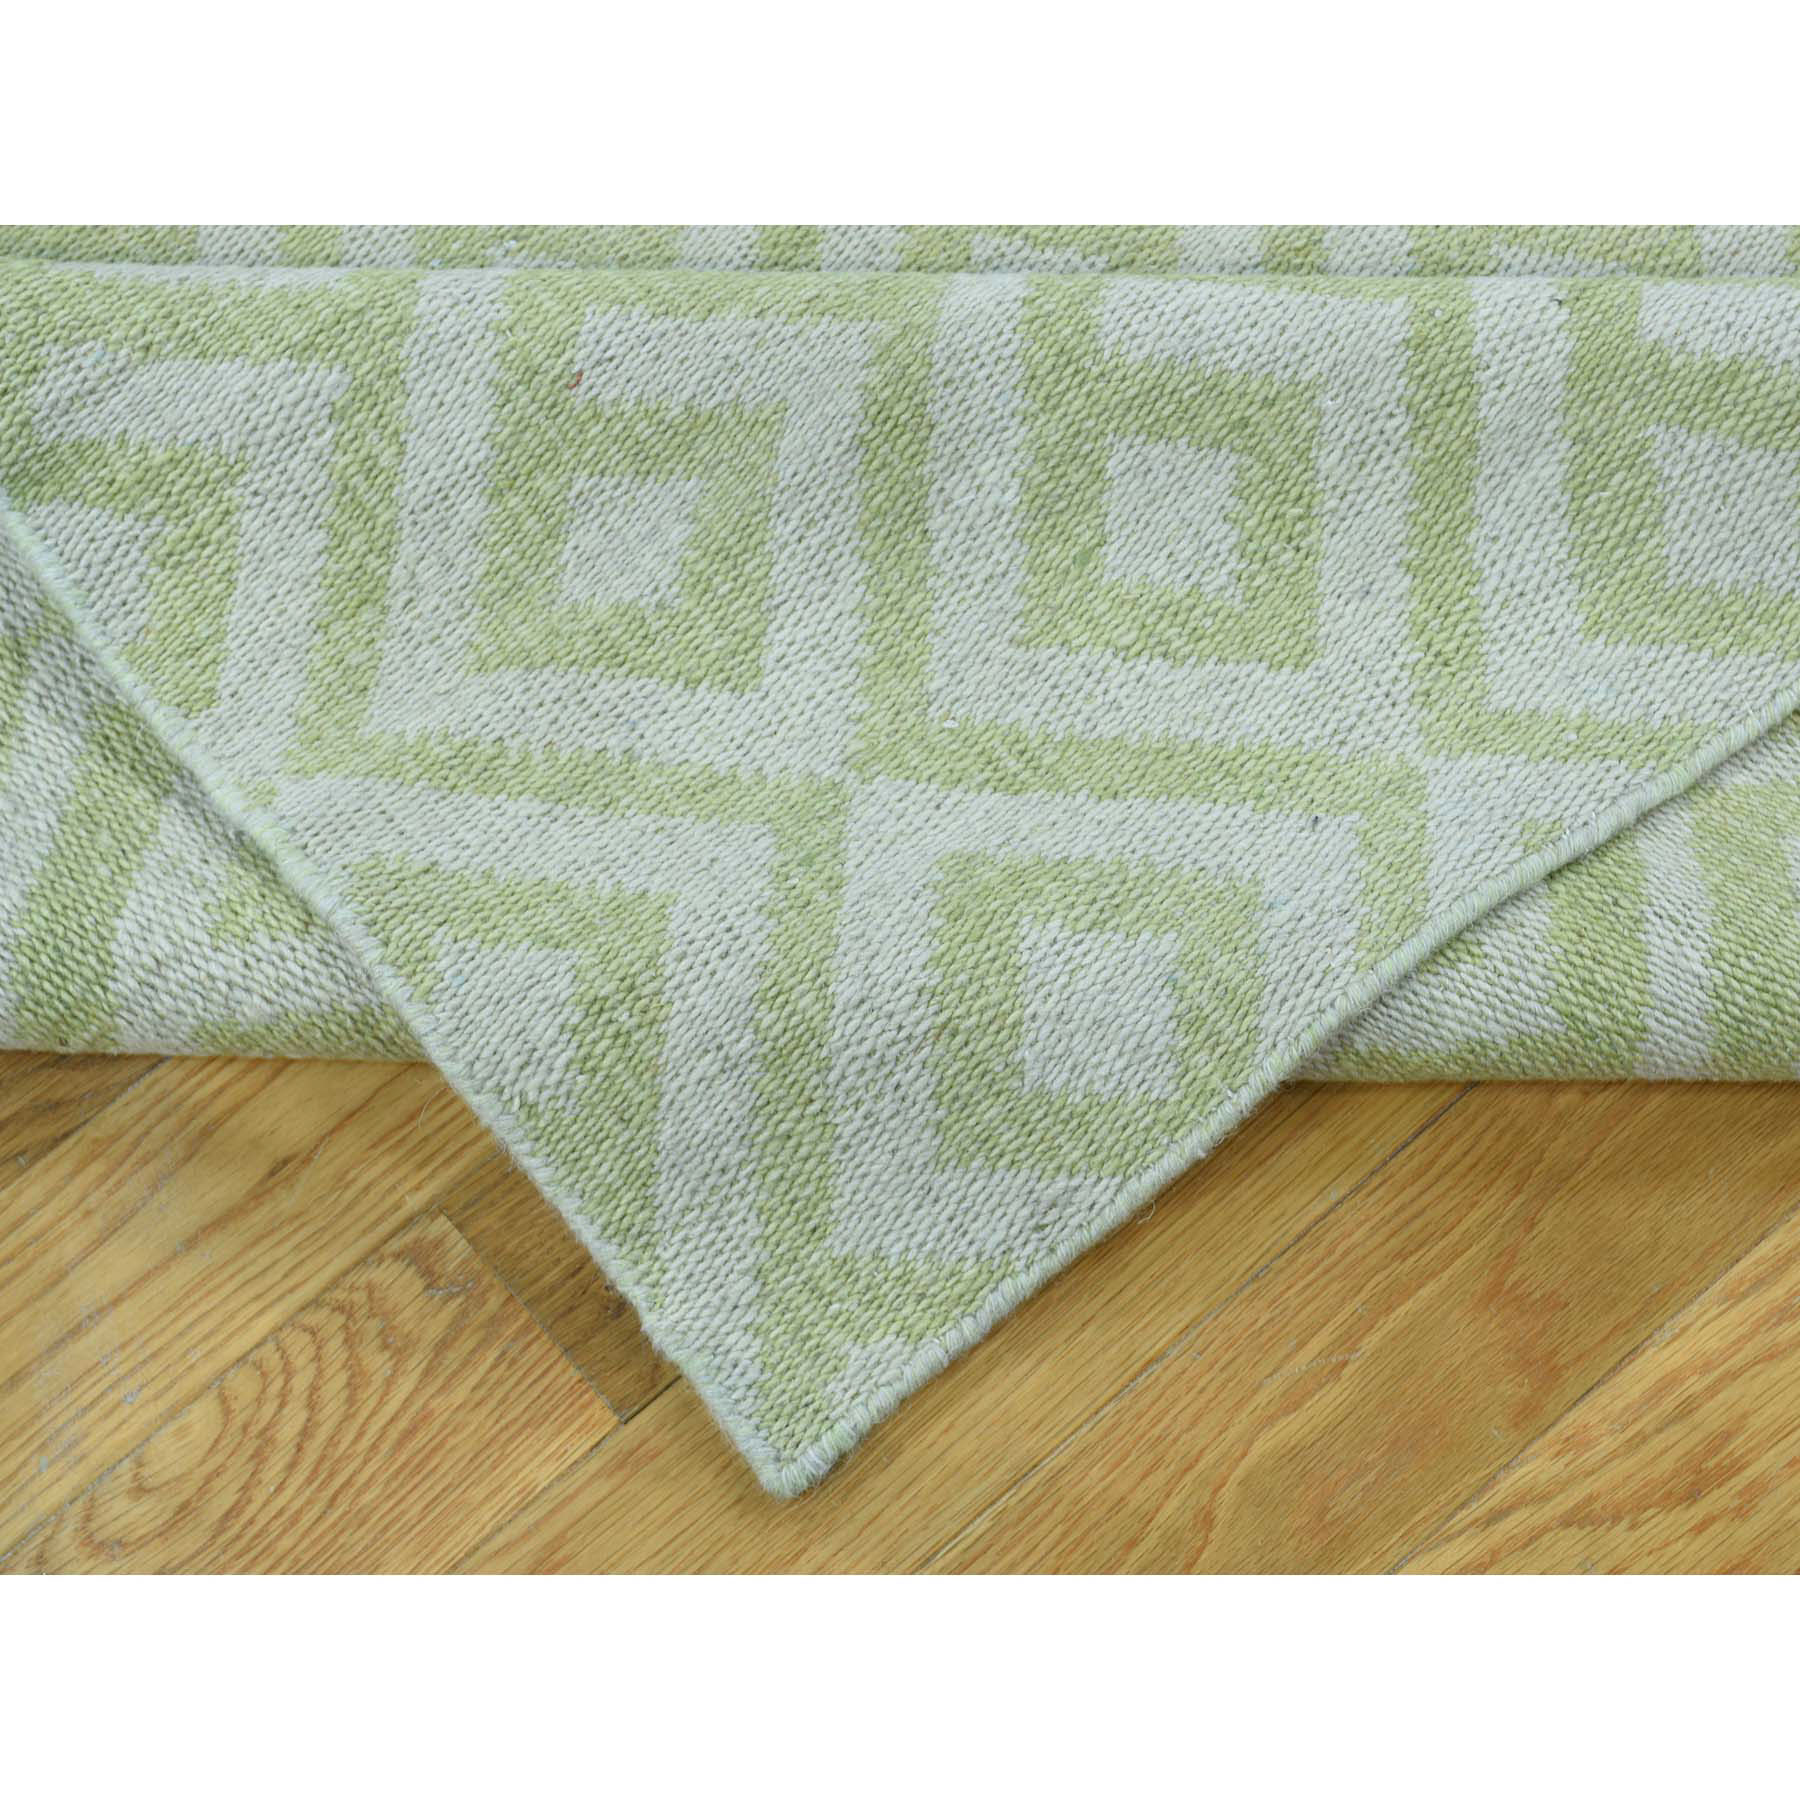 6-x6-3  Flat Weave Hand Woven Durie Kilim Reversible Square Rug